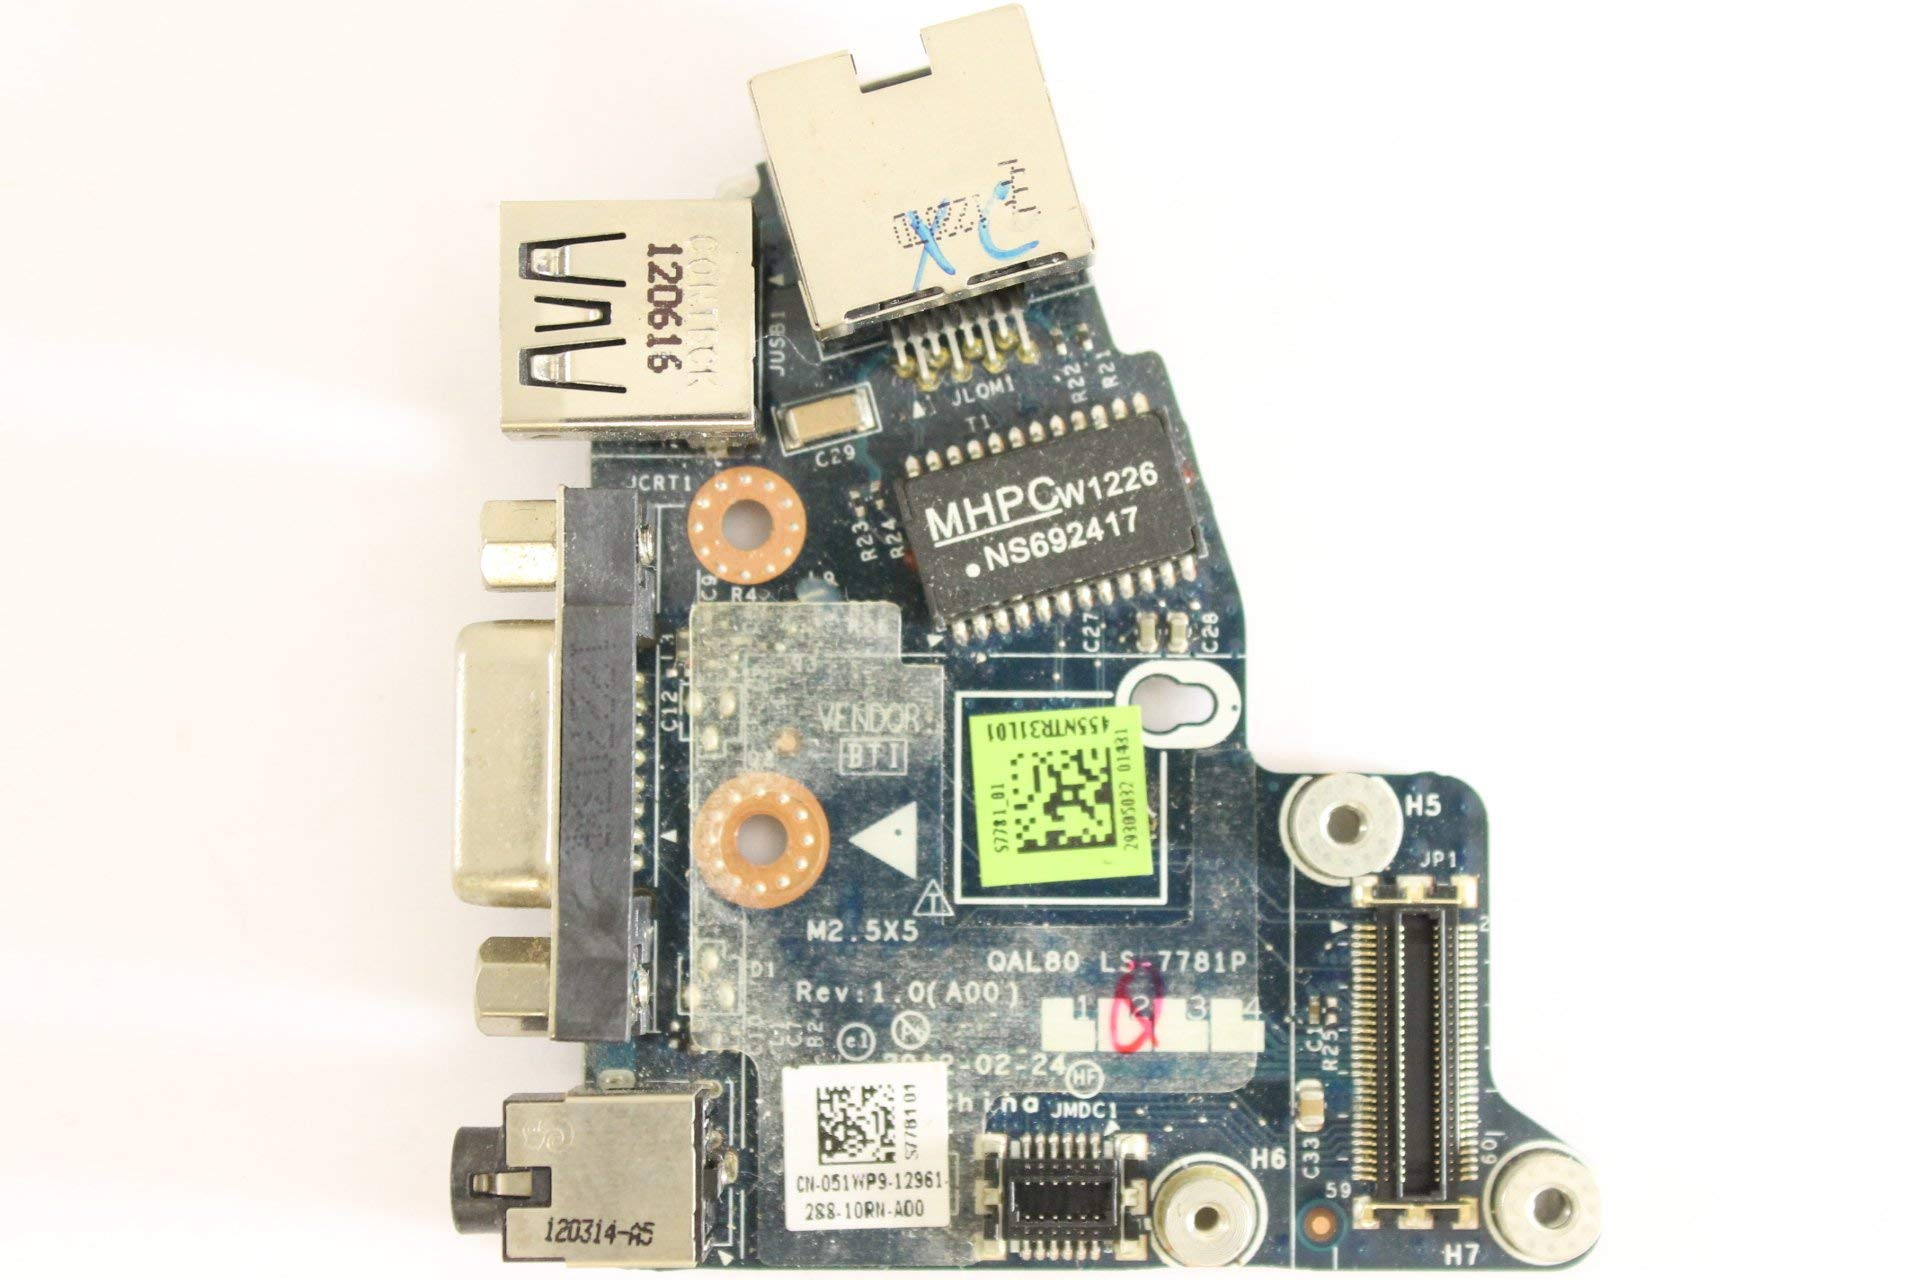 Dell Latitude E6430 51WP9 Audio Ethernet USB VGA Modem Board LS-7781P (Certified Refurbished) by Dell (Image #1)